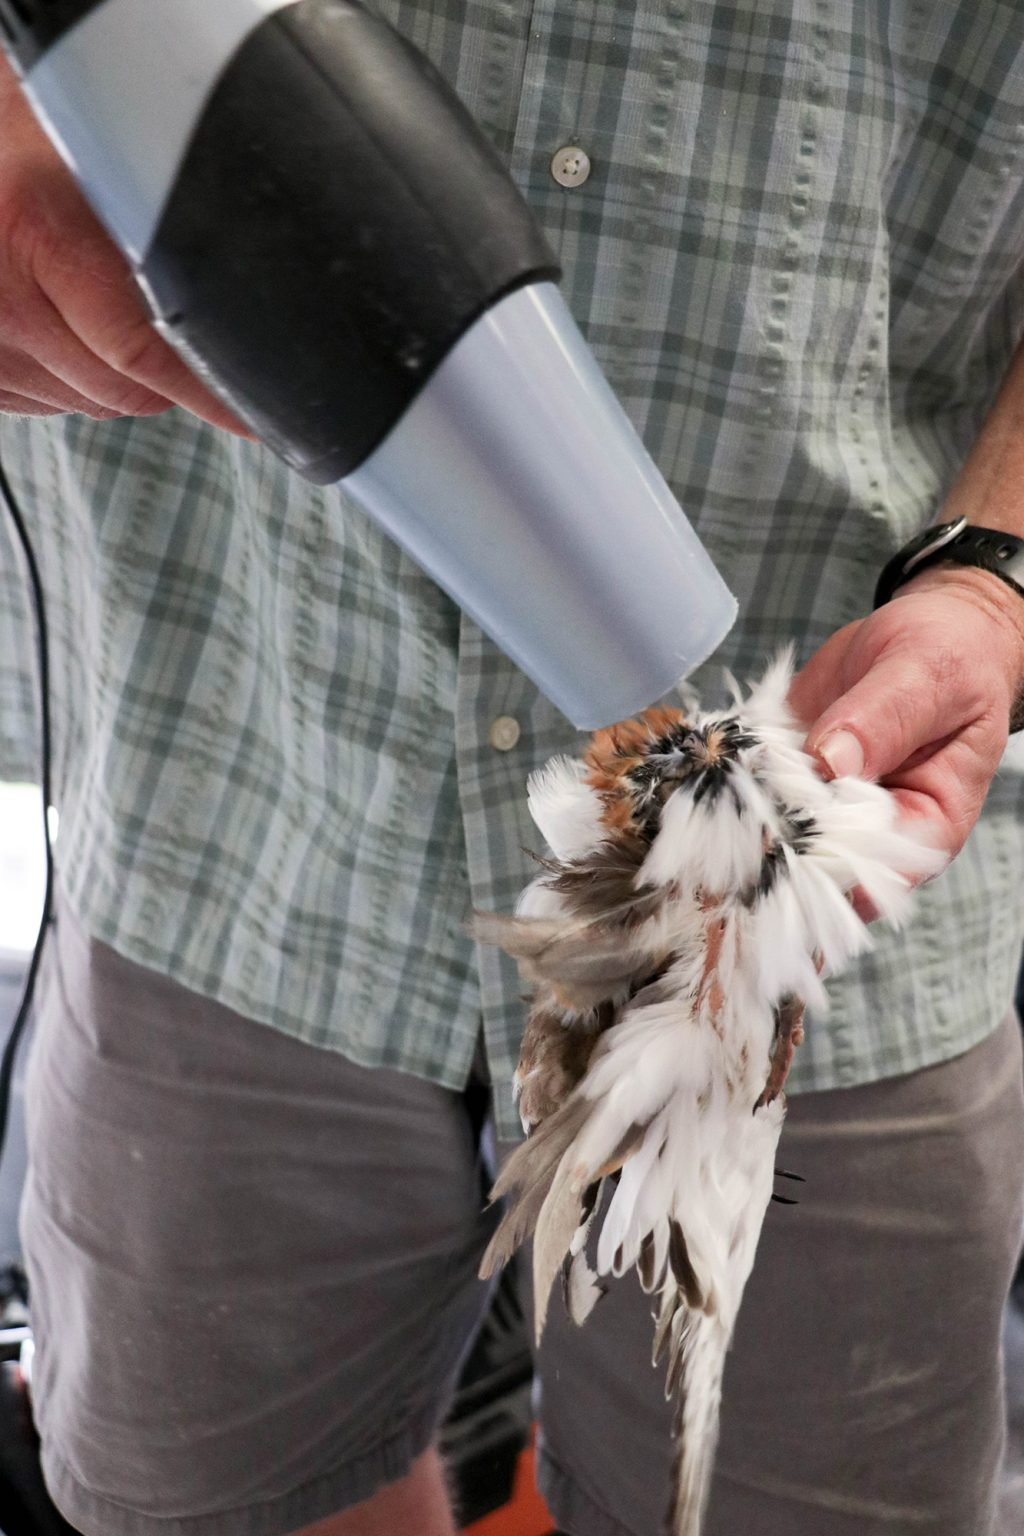 blow drying the bird's feathers